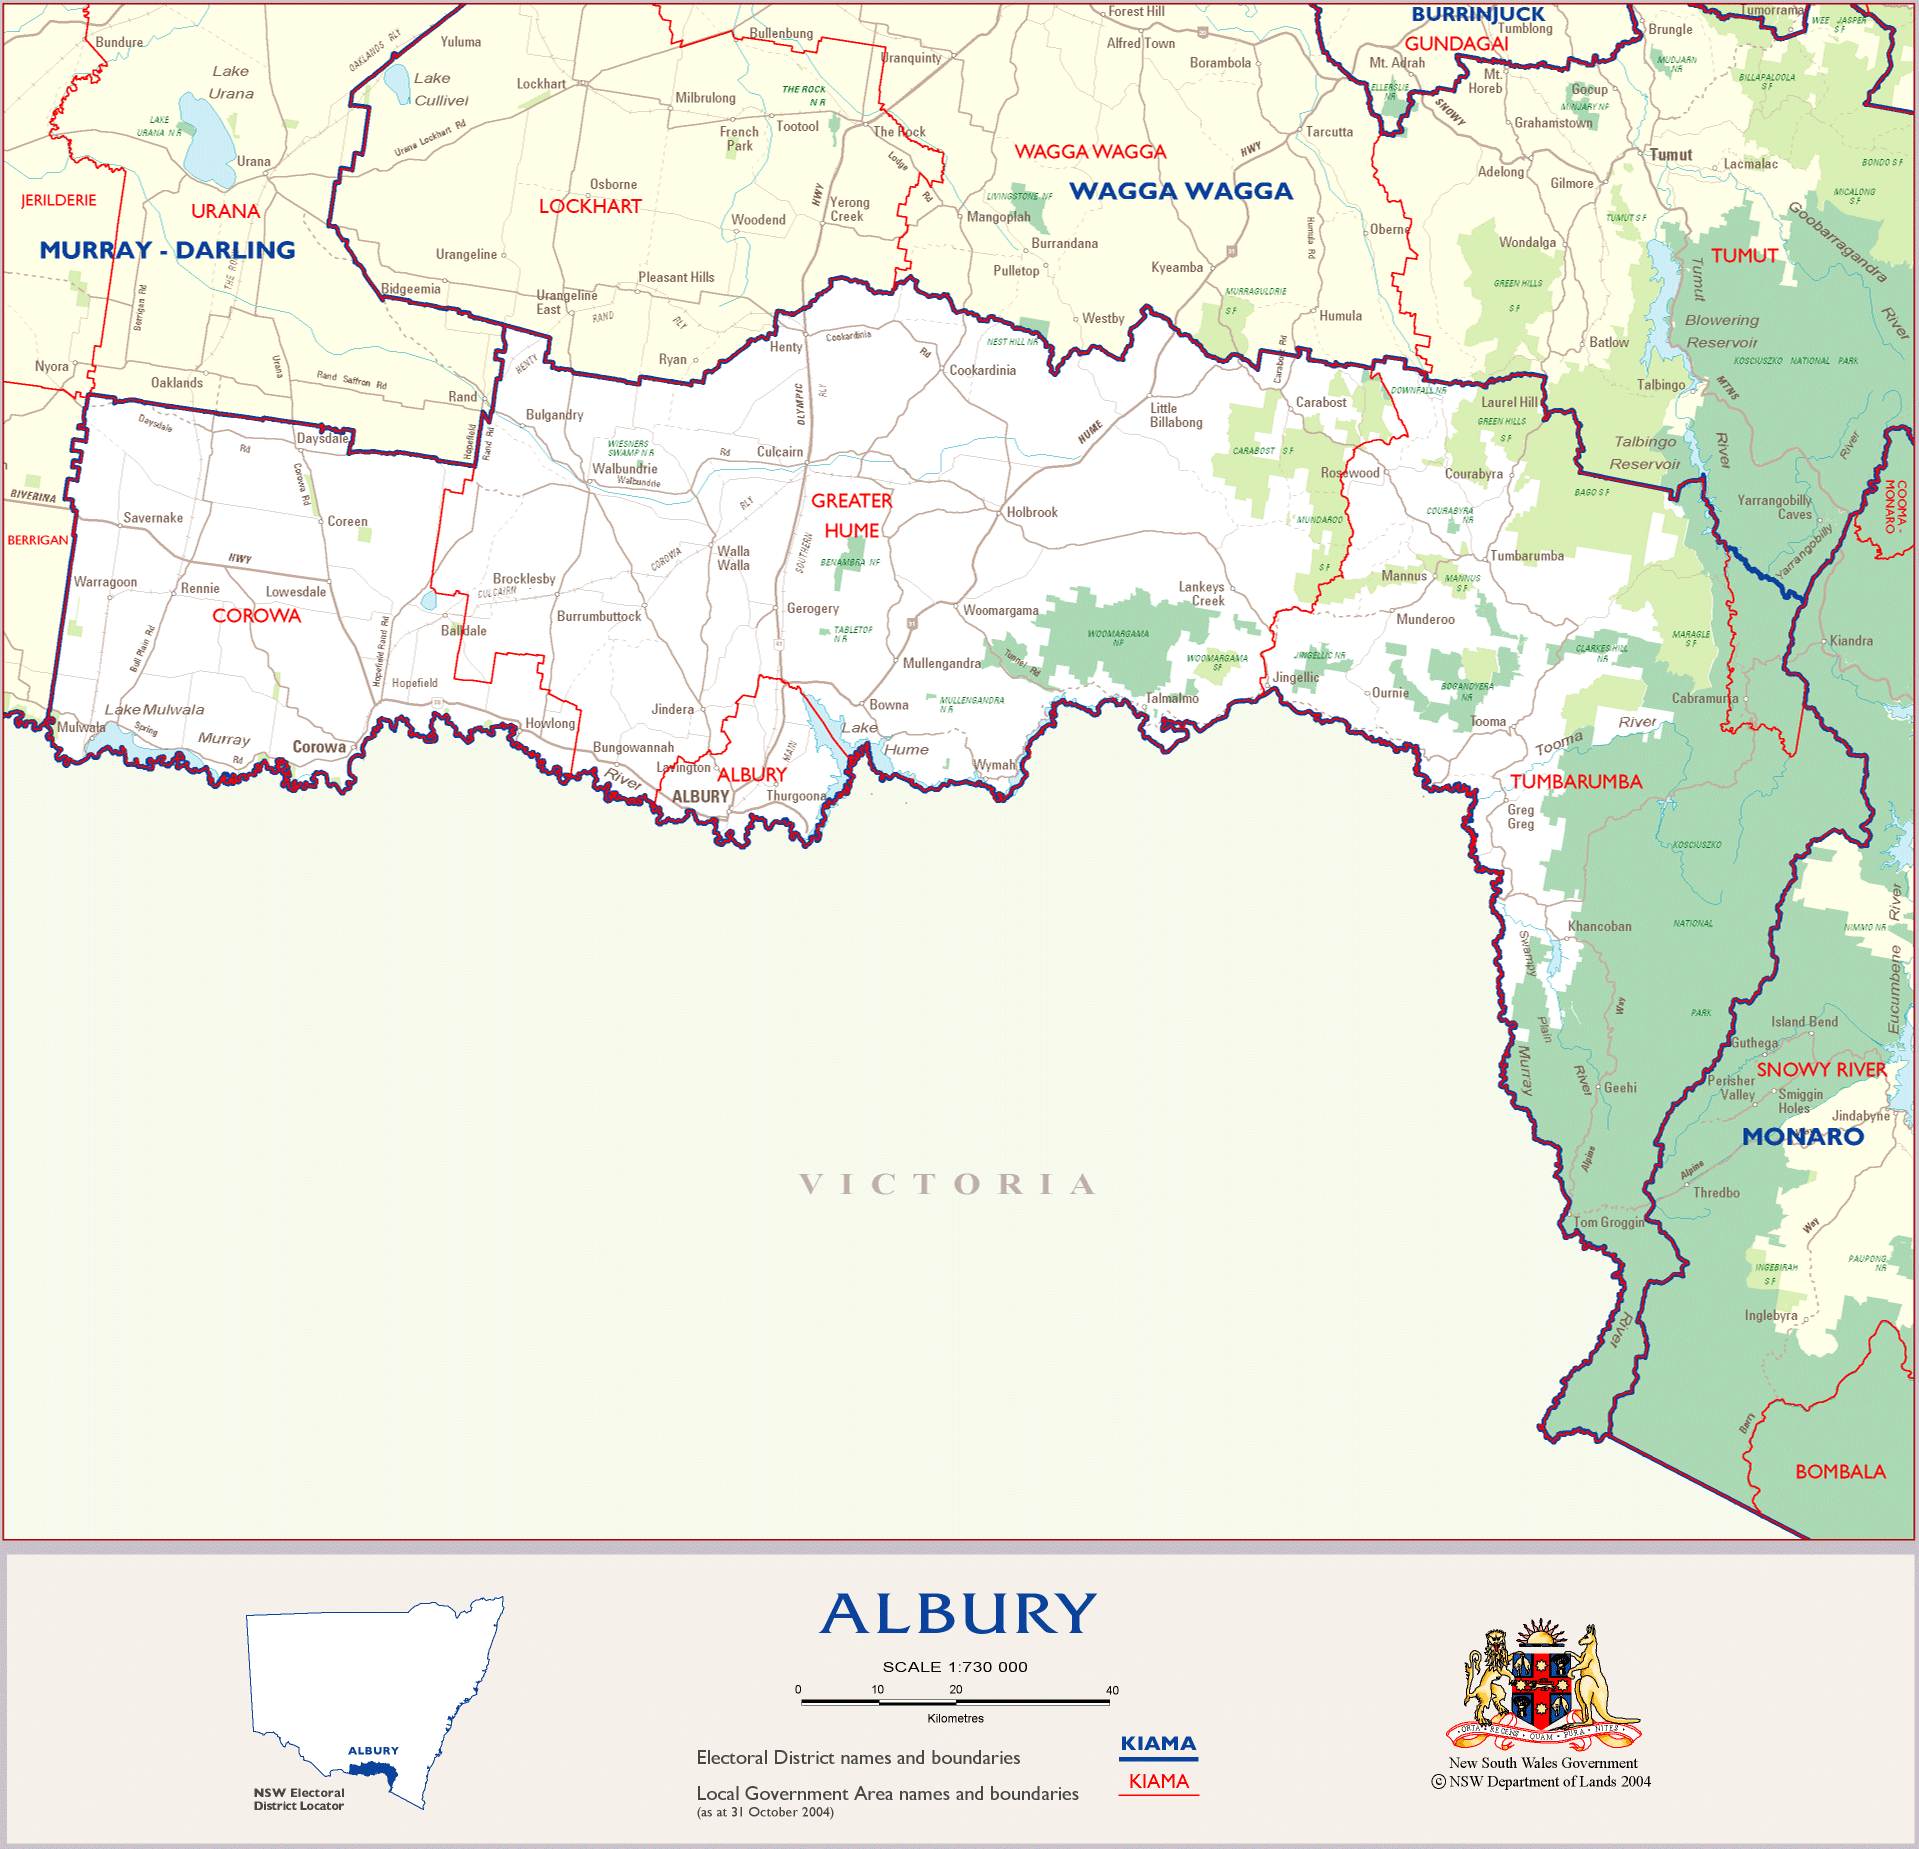 City Map of Albury Mapsofnet